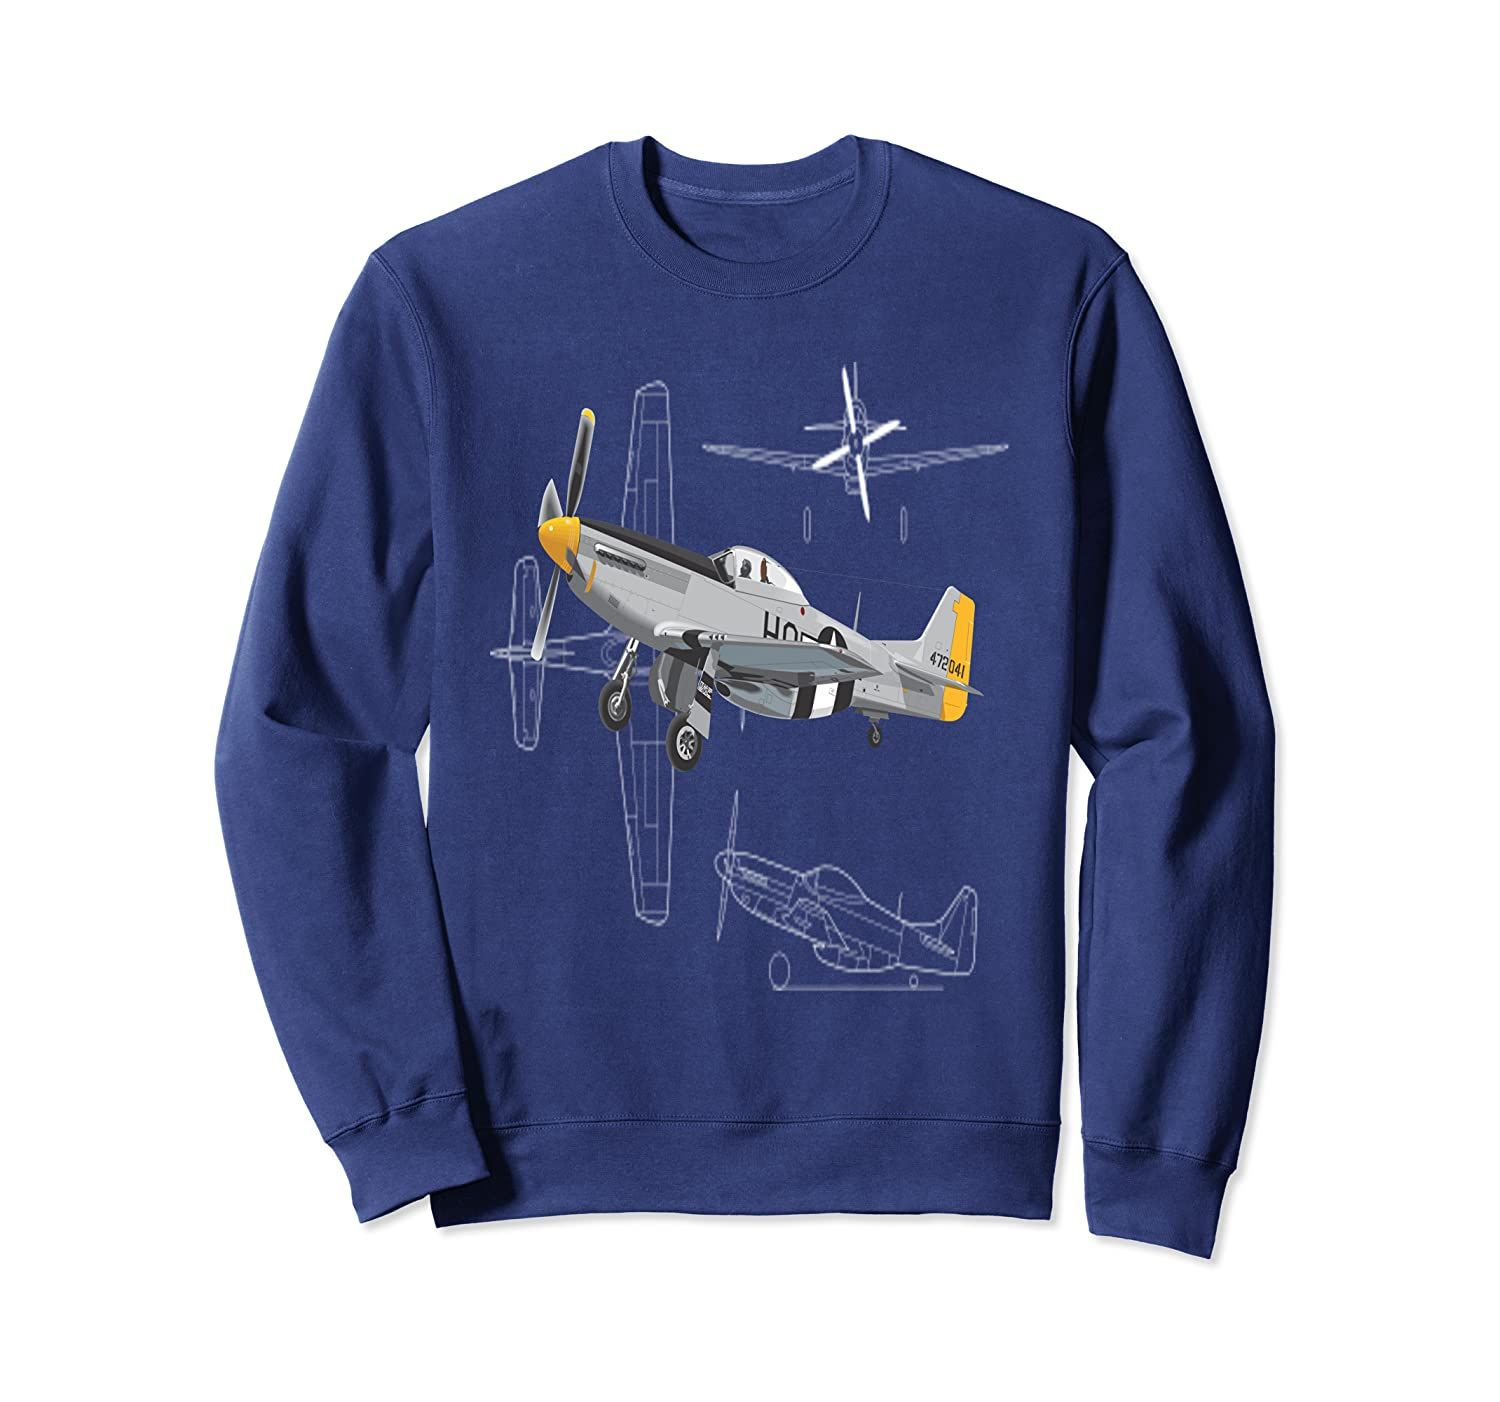 P-51 Mustang WWII Fighter Airplane Sweatshirt